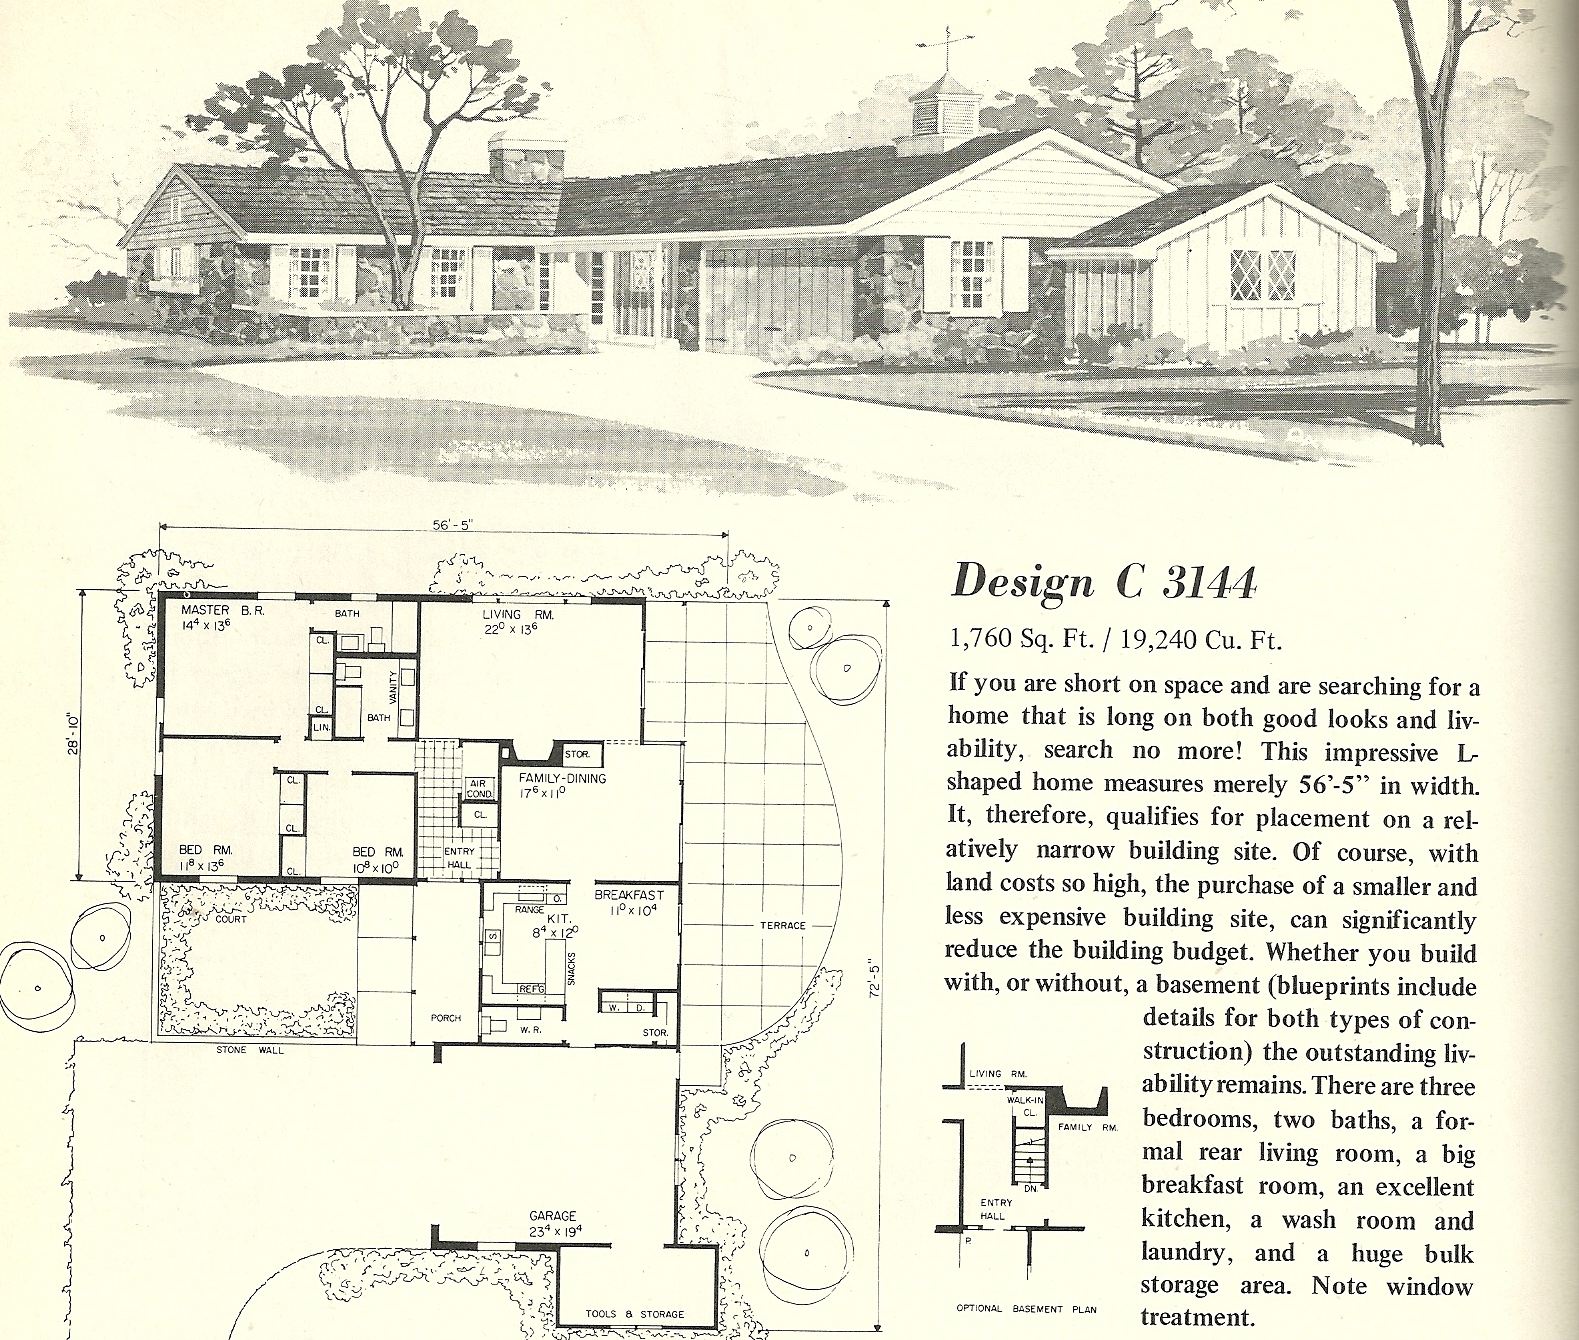 vintage house plans 3144 antique alter ego